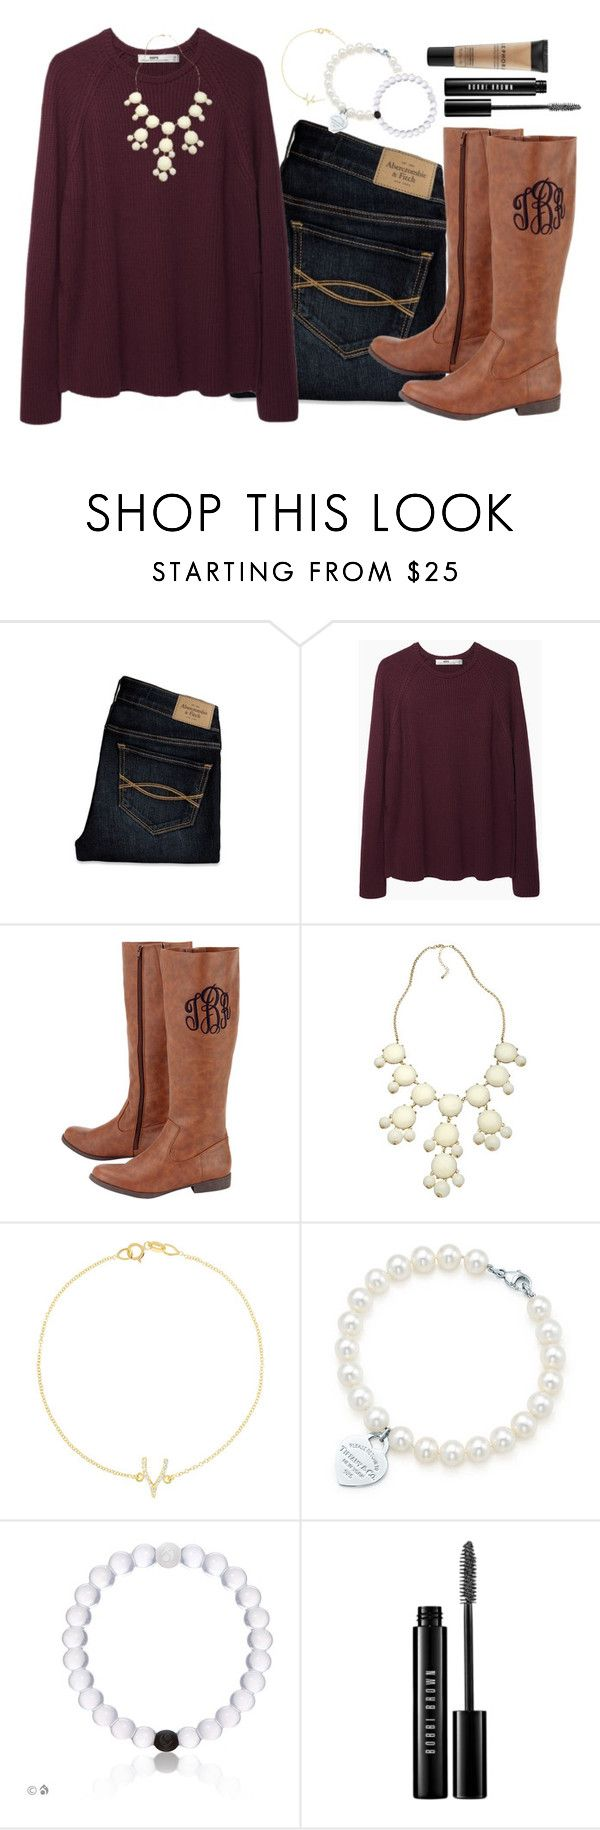 """monogram boots!¡☕️"" by horsegirly1234 ❤ liked on Polyvore featuring Abercrombie & Fitch, Hope, Blu Bijoux, Jennifer Meyer Jewelry, Tiffany & Co., Bobbi Brown Cosmetics and Sephora Collection"